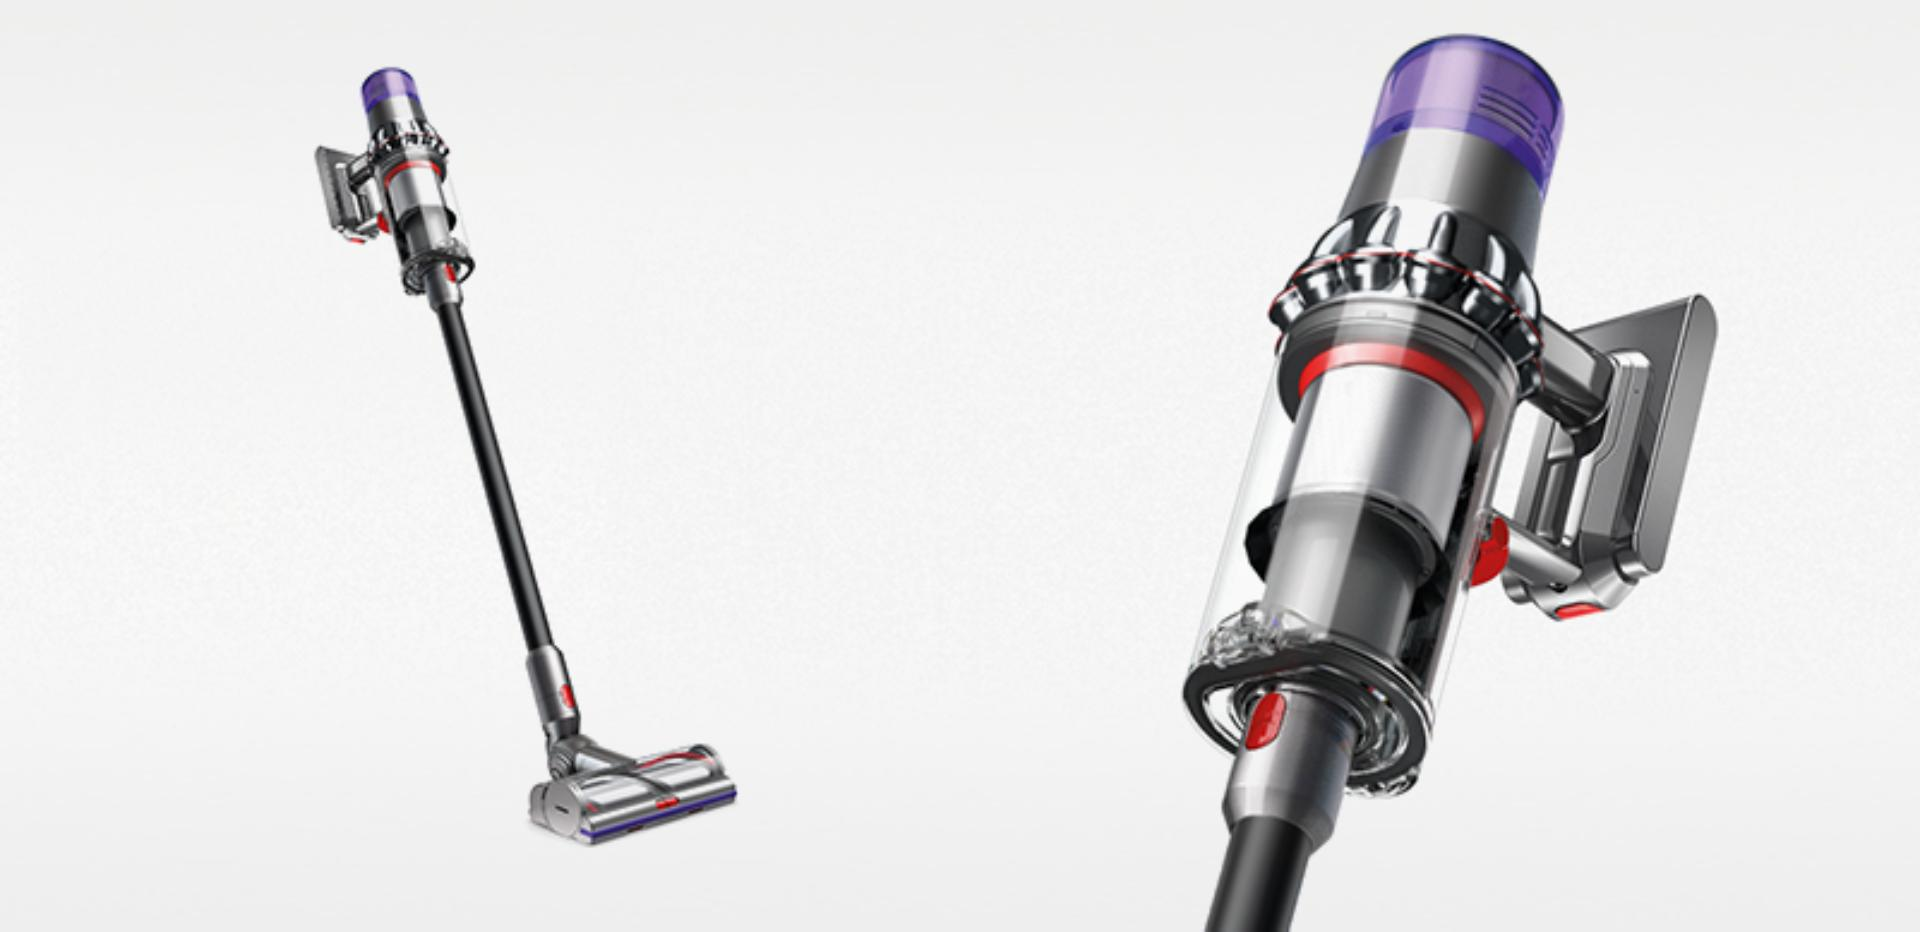 Image showing Dyson V11 Total Clean Extra cordless vacuum